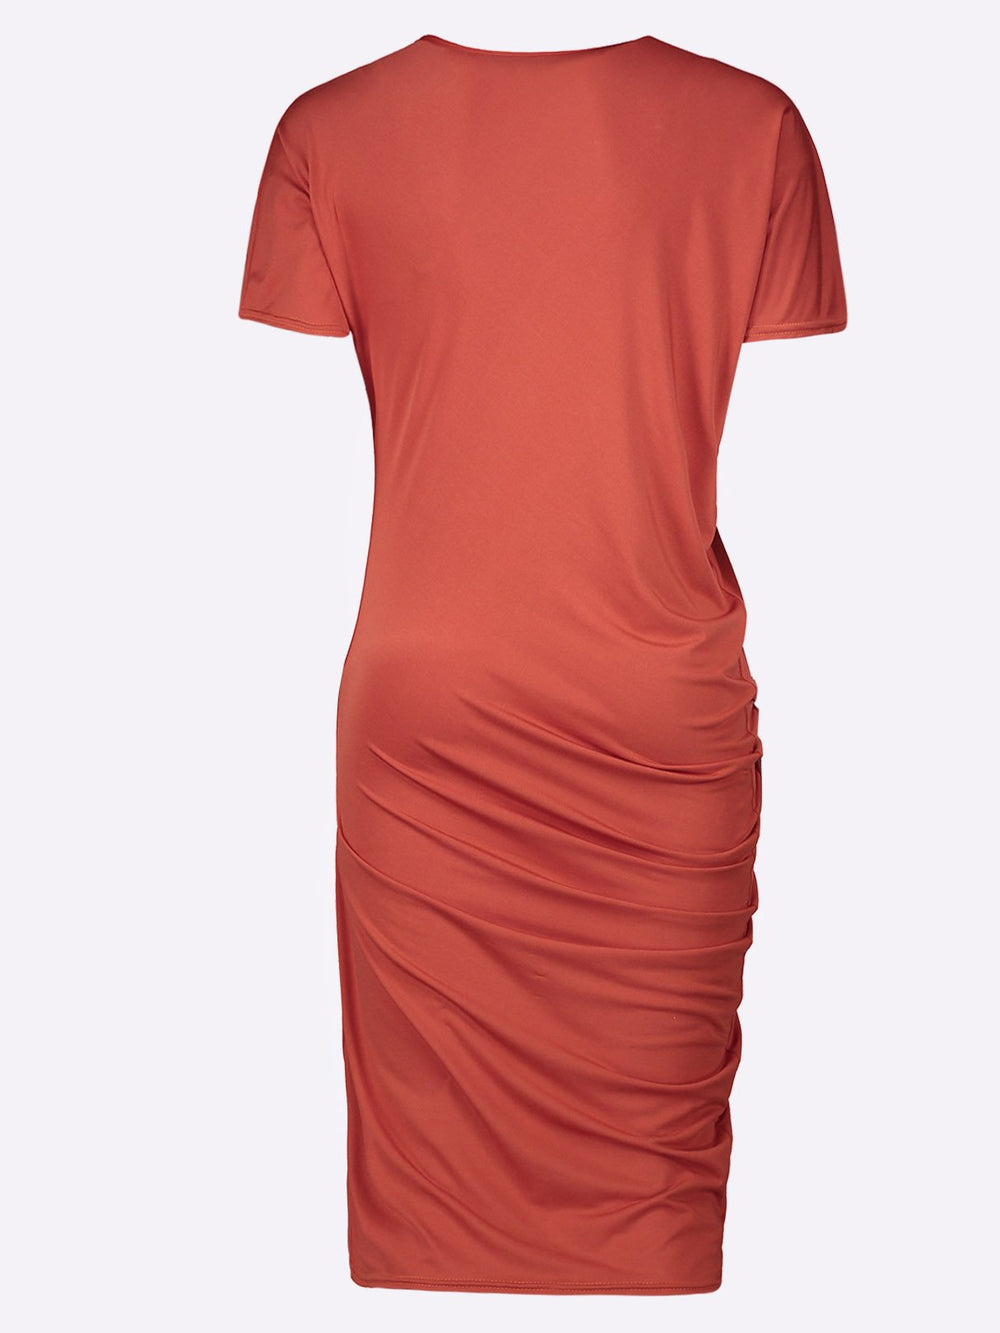 Ladies Orange Bodycon Dresses